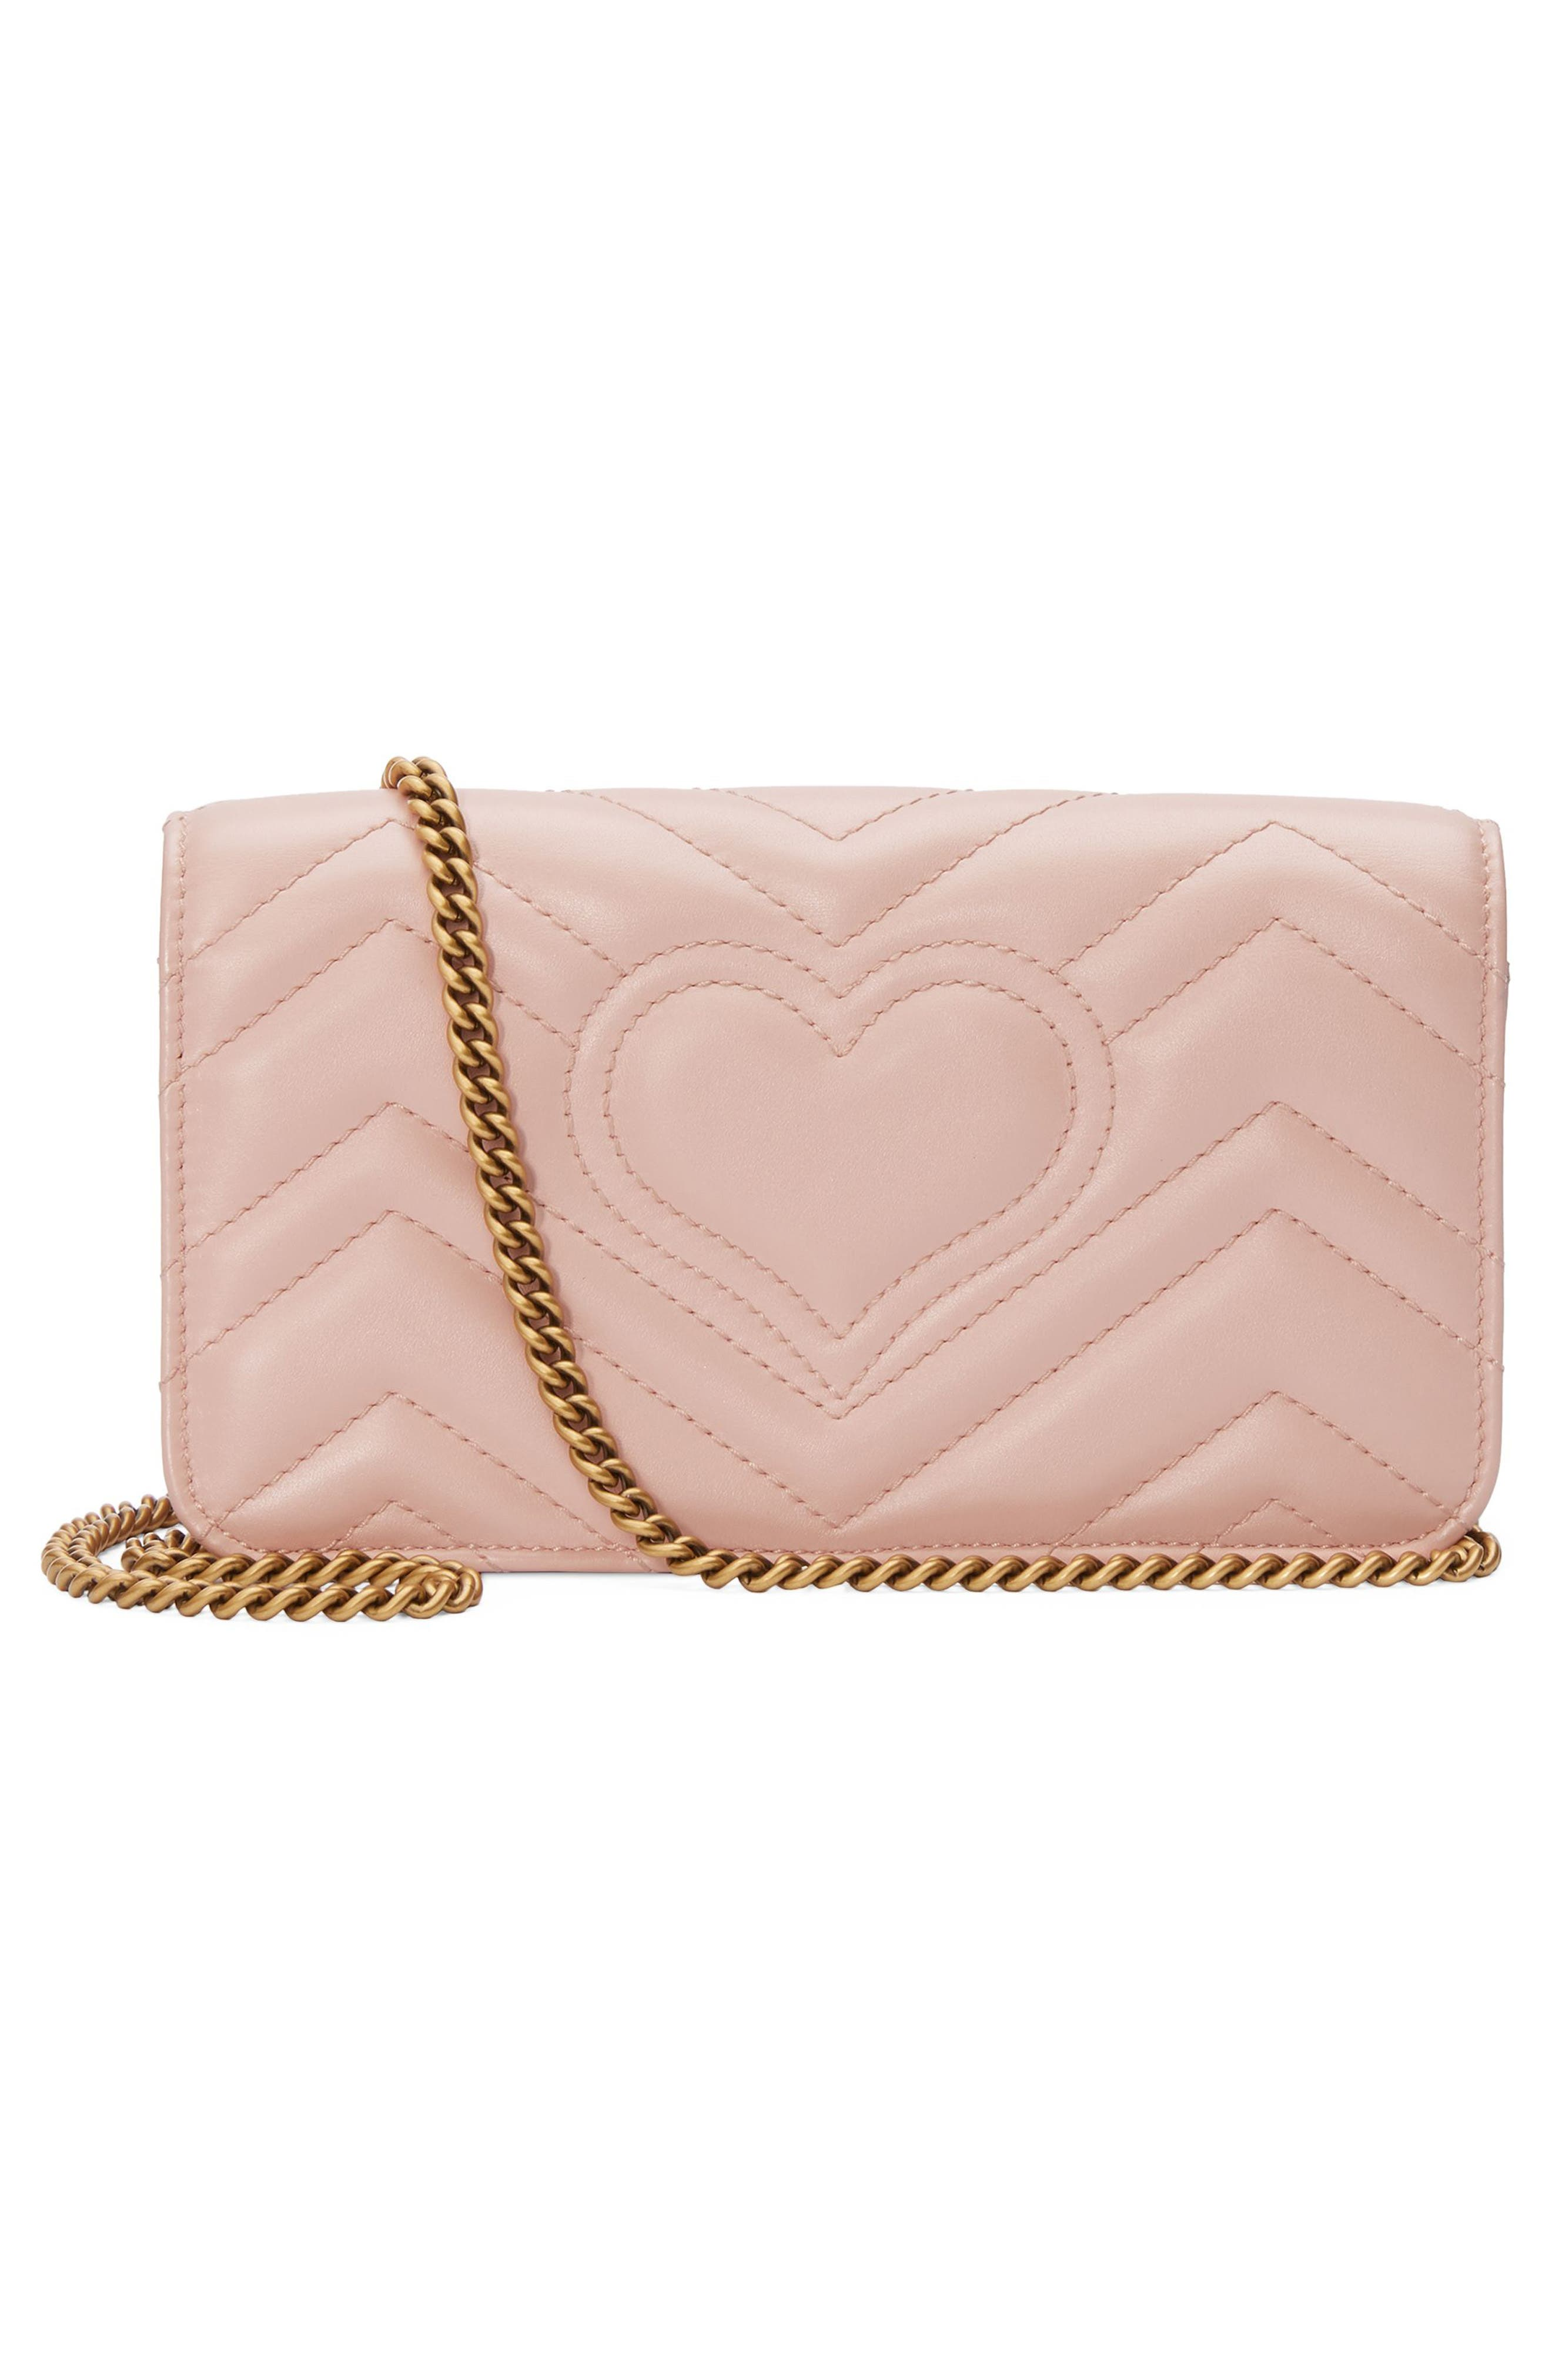 Marmont 2.0 Leather Shoulder Bag,                             Alternate thumbnail 2, color,                             PERFECT PINK